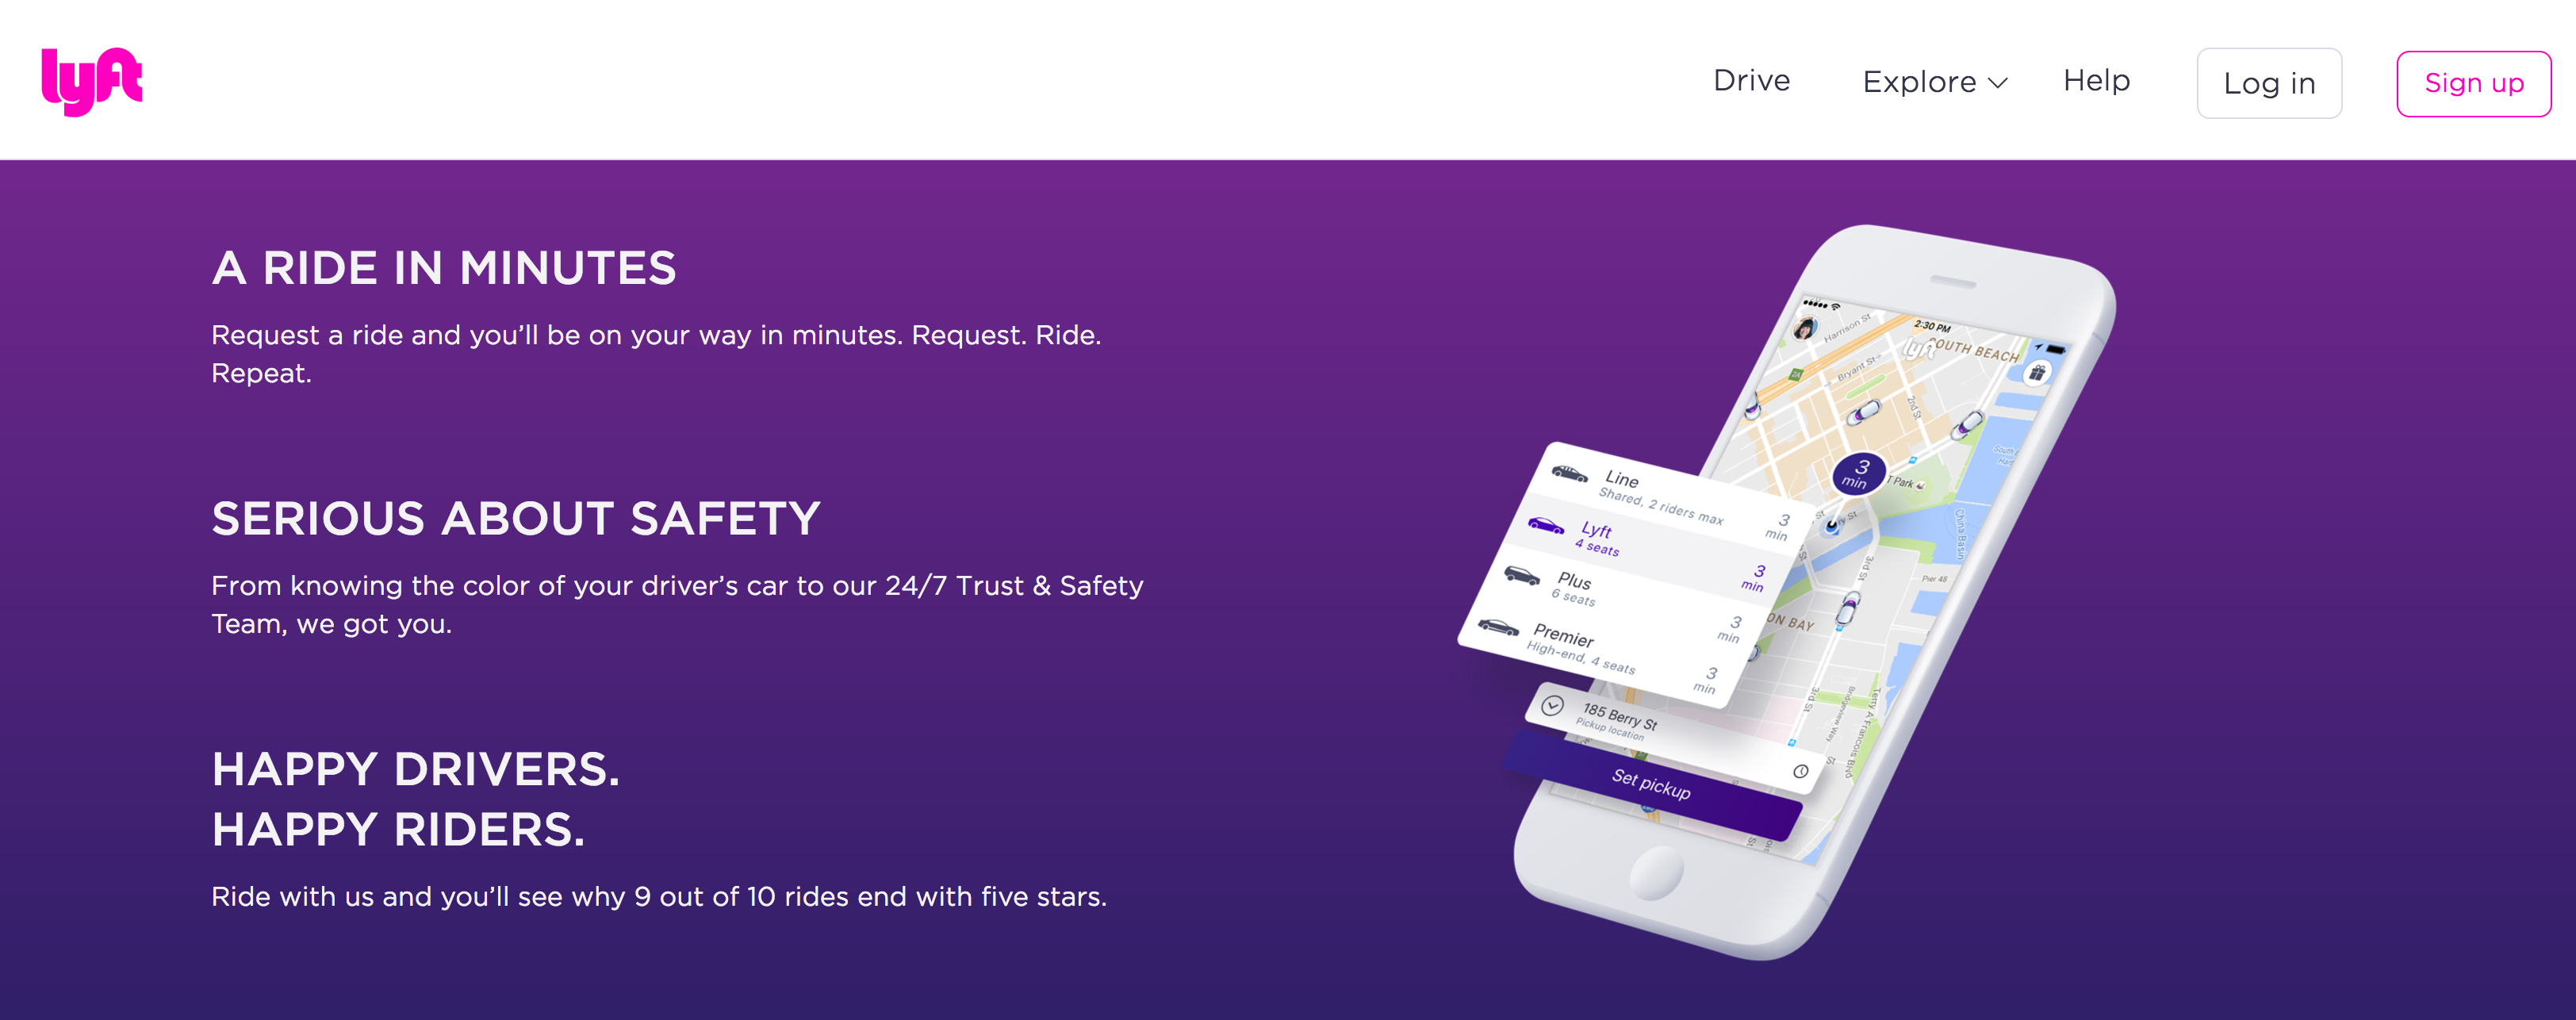 virtual-conference-how-to-host-on-demand-example-lyft.png